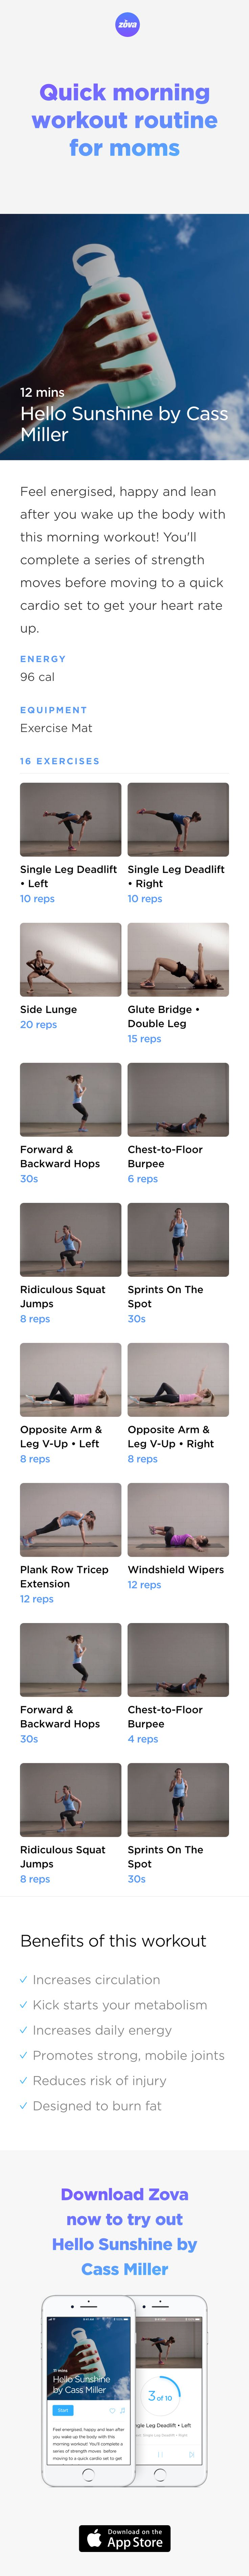 Start the day right with this super quick and effective workout. Using only bodyweight exercises, you'll strength and tone your muscles, while increasing blood flow to your whole body. So in just eight minutes you'll wake both your body and your mind up, ready for the day ahead! #weightloss #workout #fitness #HIIT #fullbody #sweat #bodyweight #calories #athome #mom